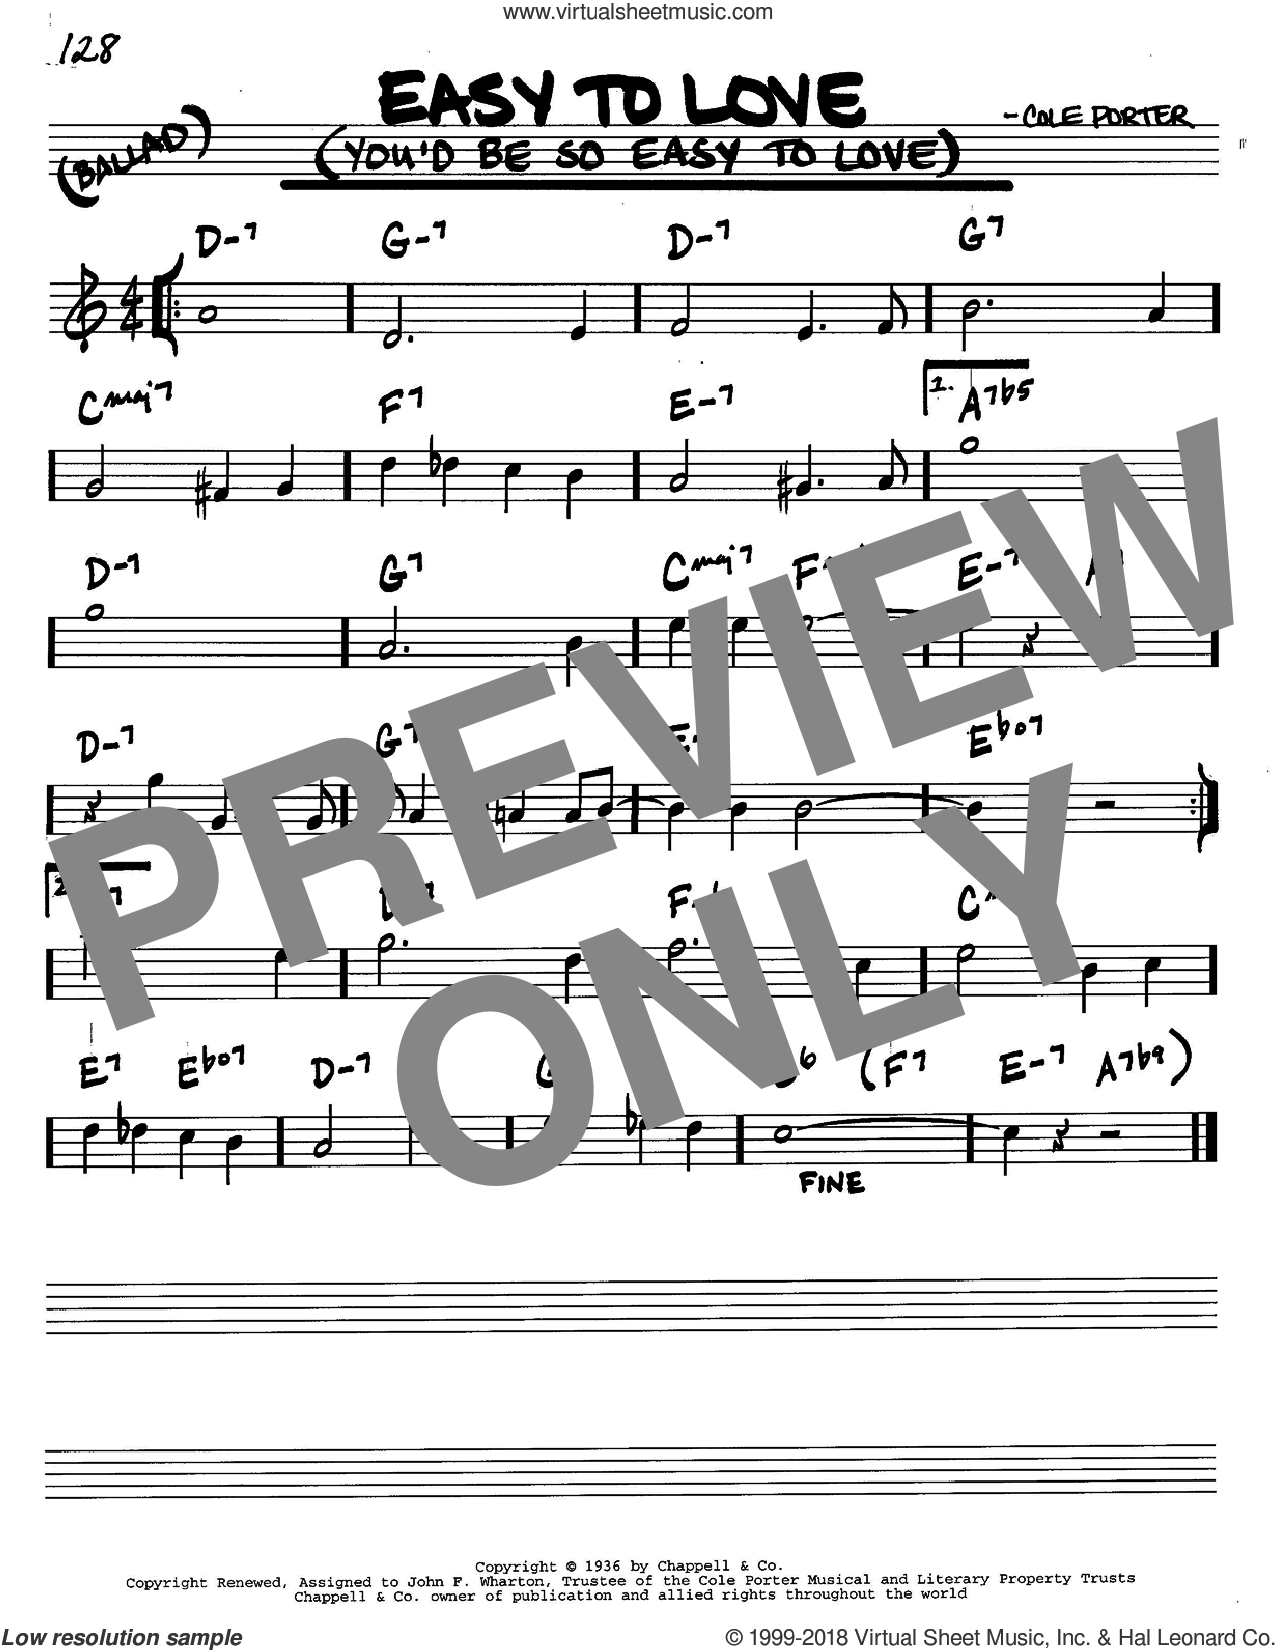 Easy To Love (You'd Be So Easy To Love) sheet music for voice and other instruments (C) by Cole Porter